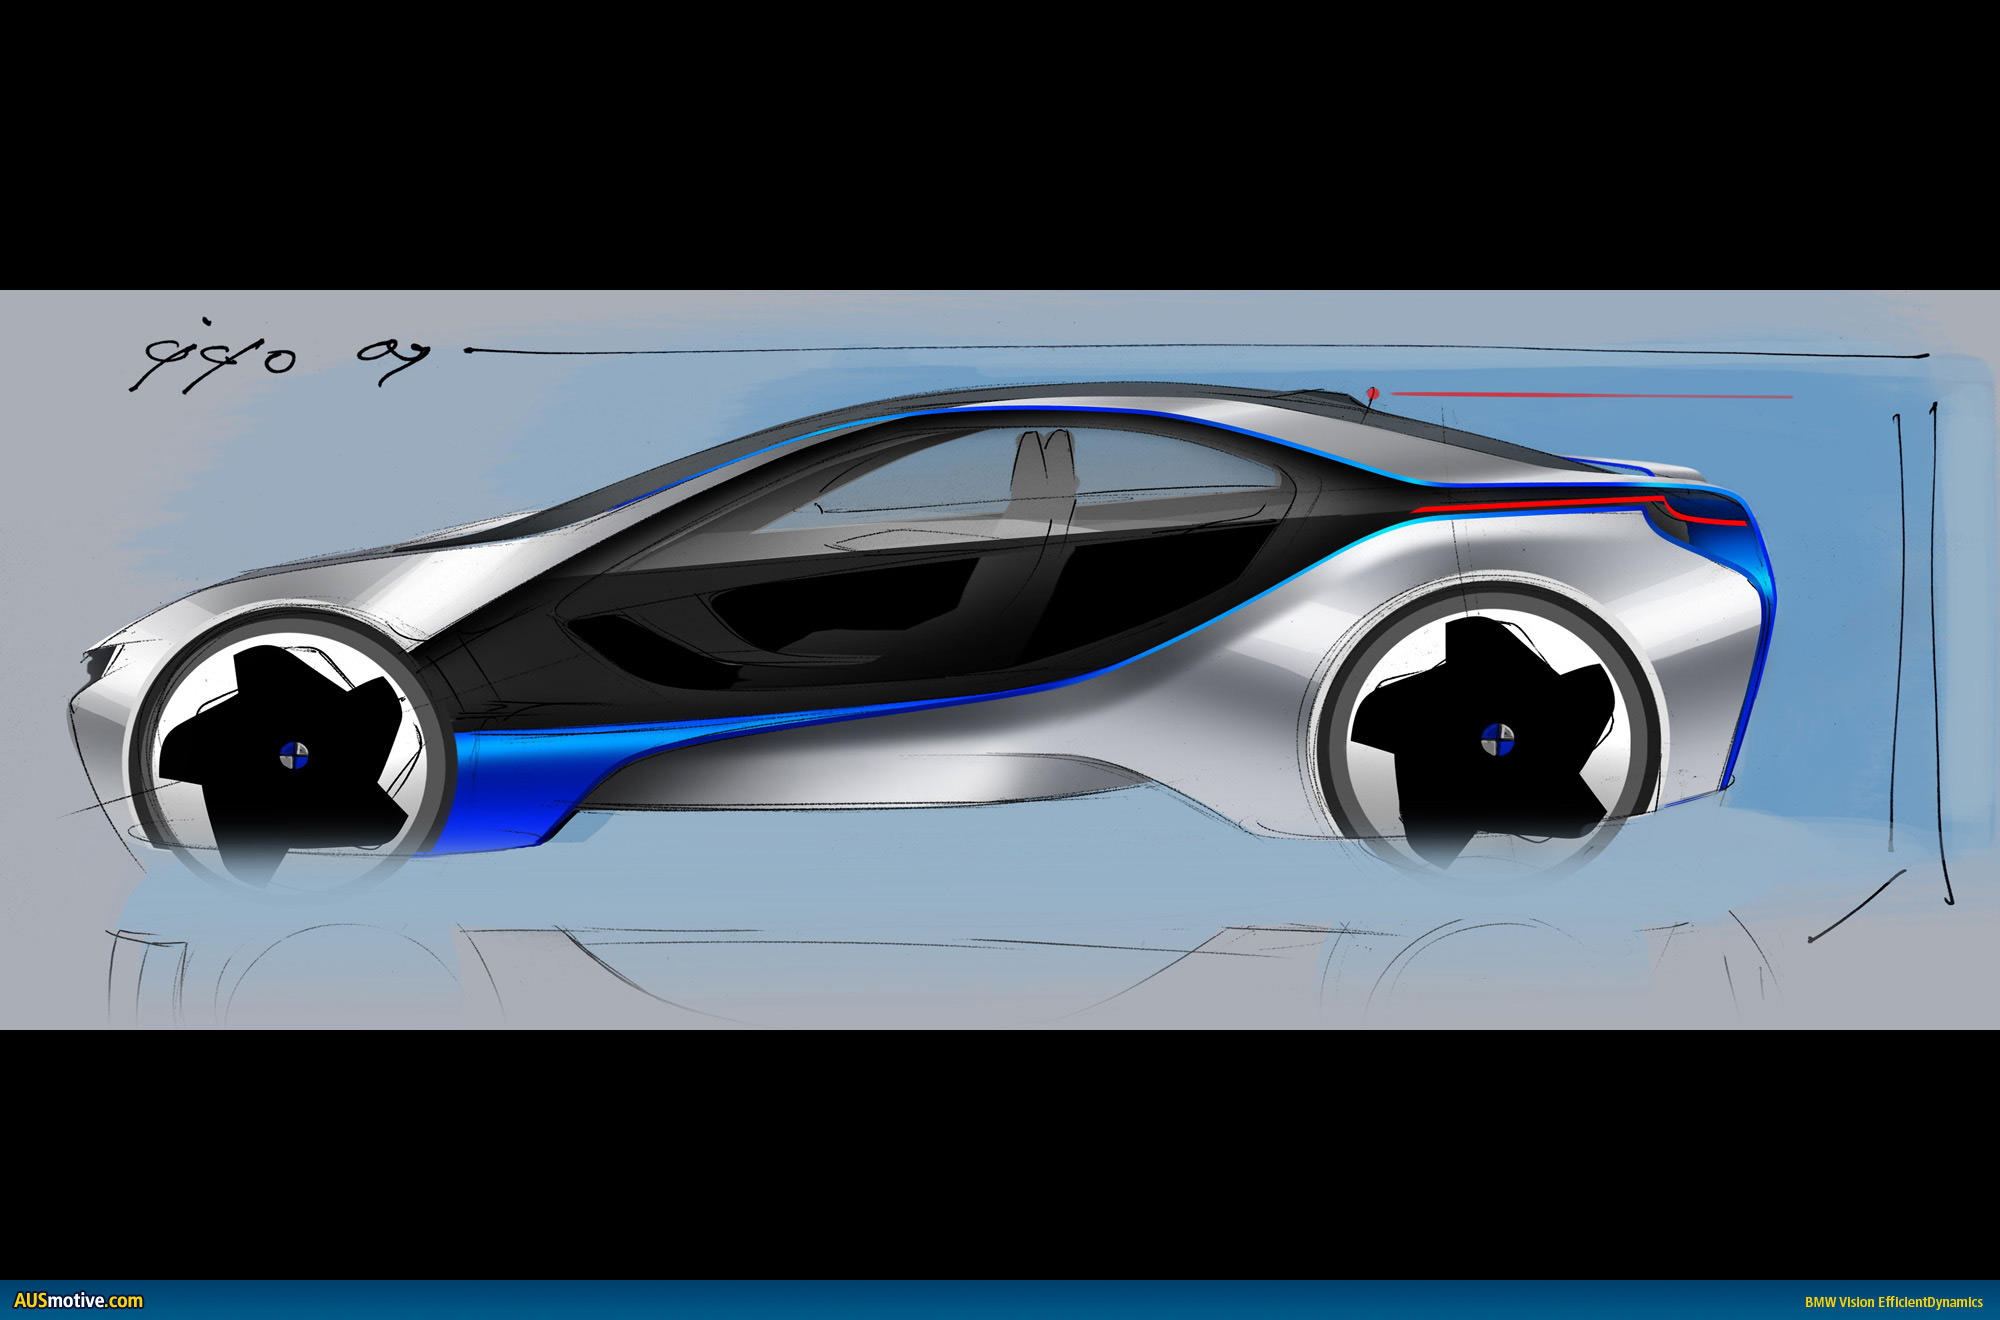 How much is the bmw vision efficientdynamics